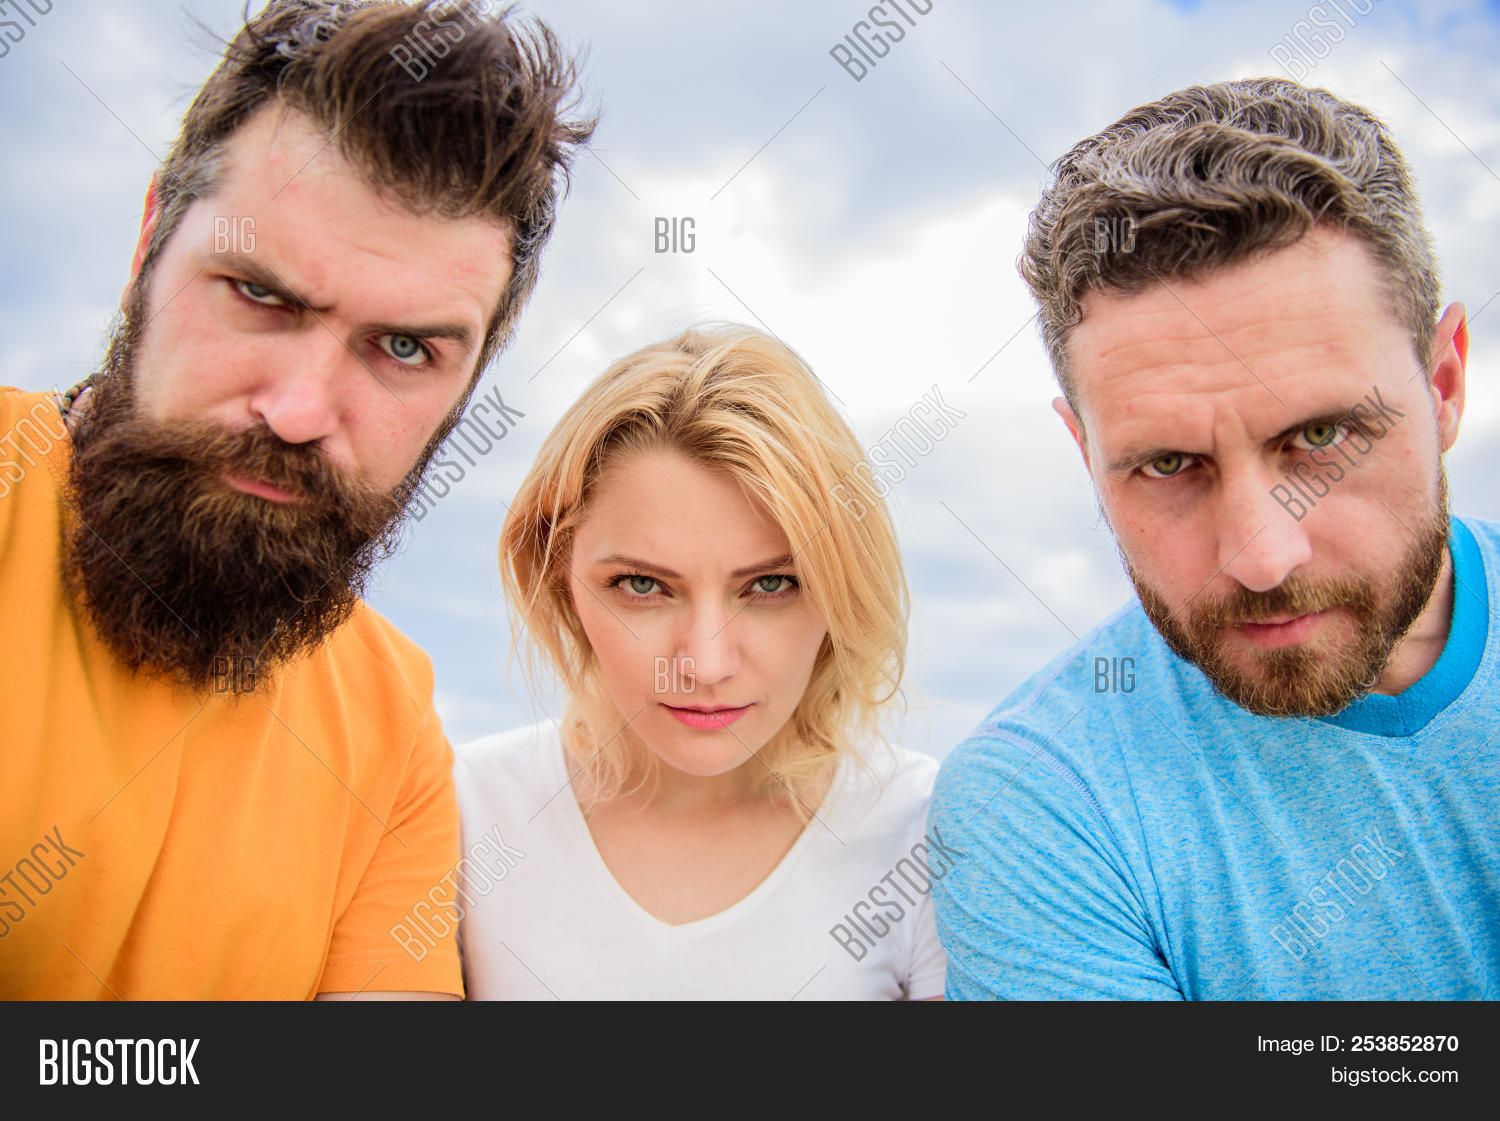 Seems remarkable Looking threesome woman were visited